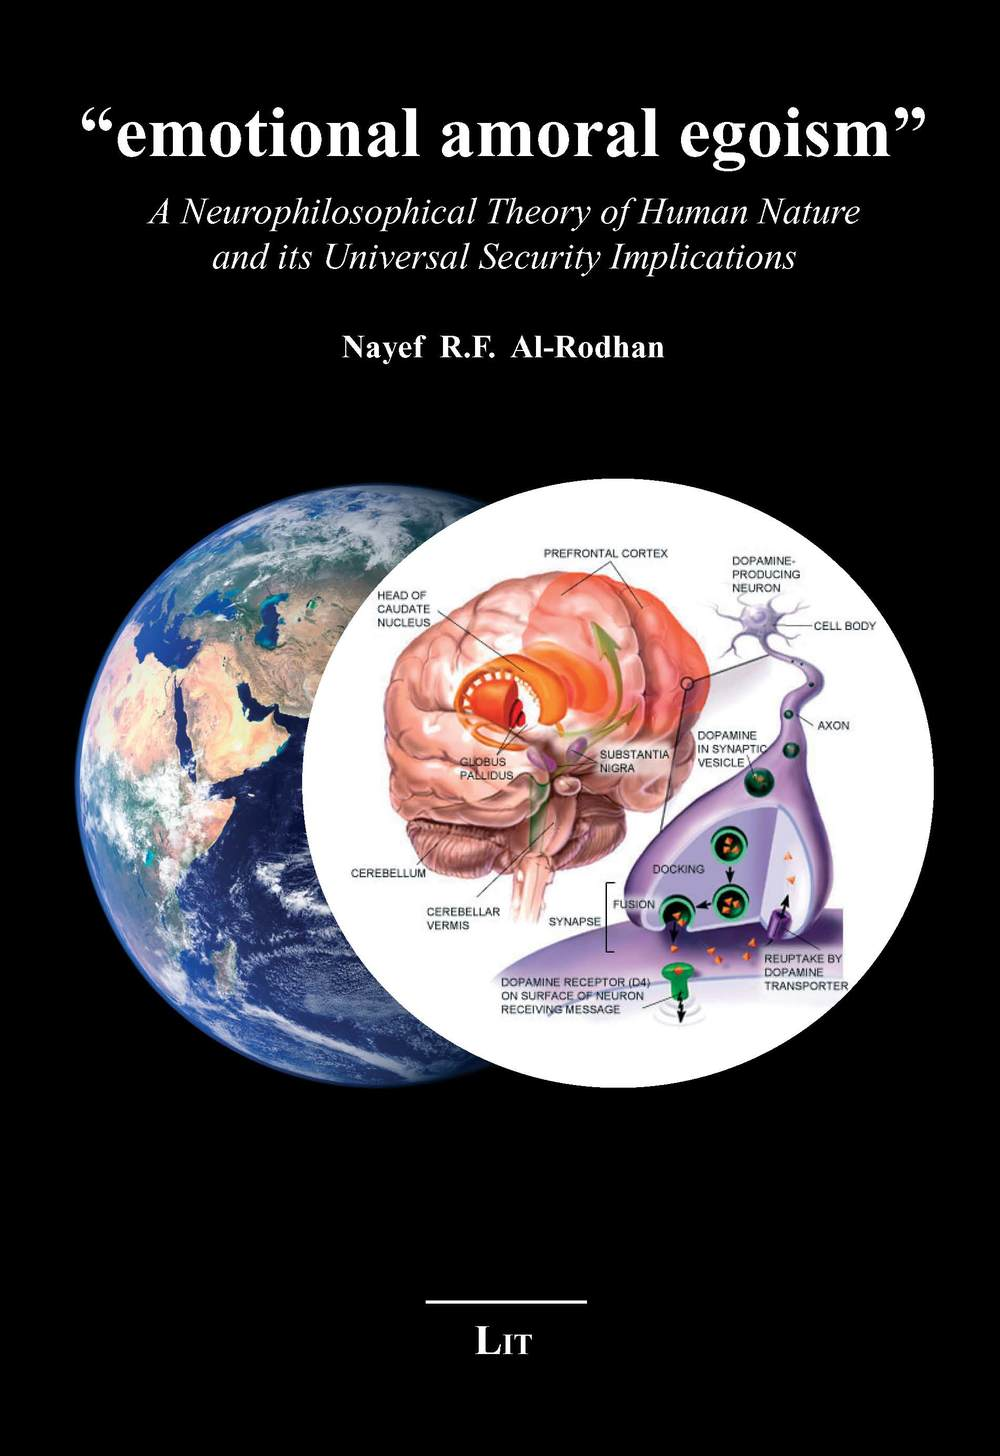 """EMOTIONAL AMORAL EGOISM"" : A Neurophilosophical Theory of Human Nature and its Universal Security Implications"